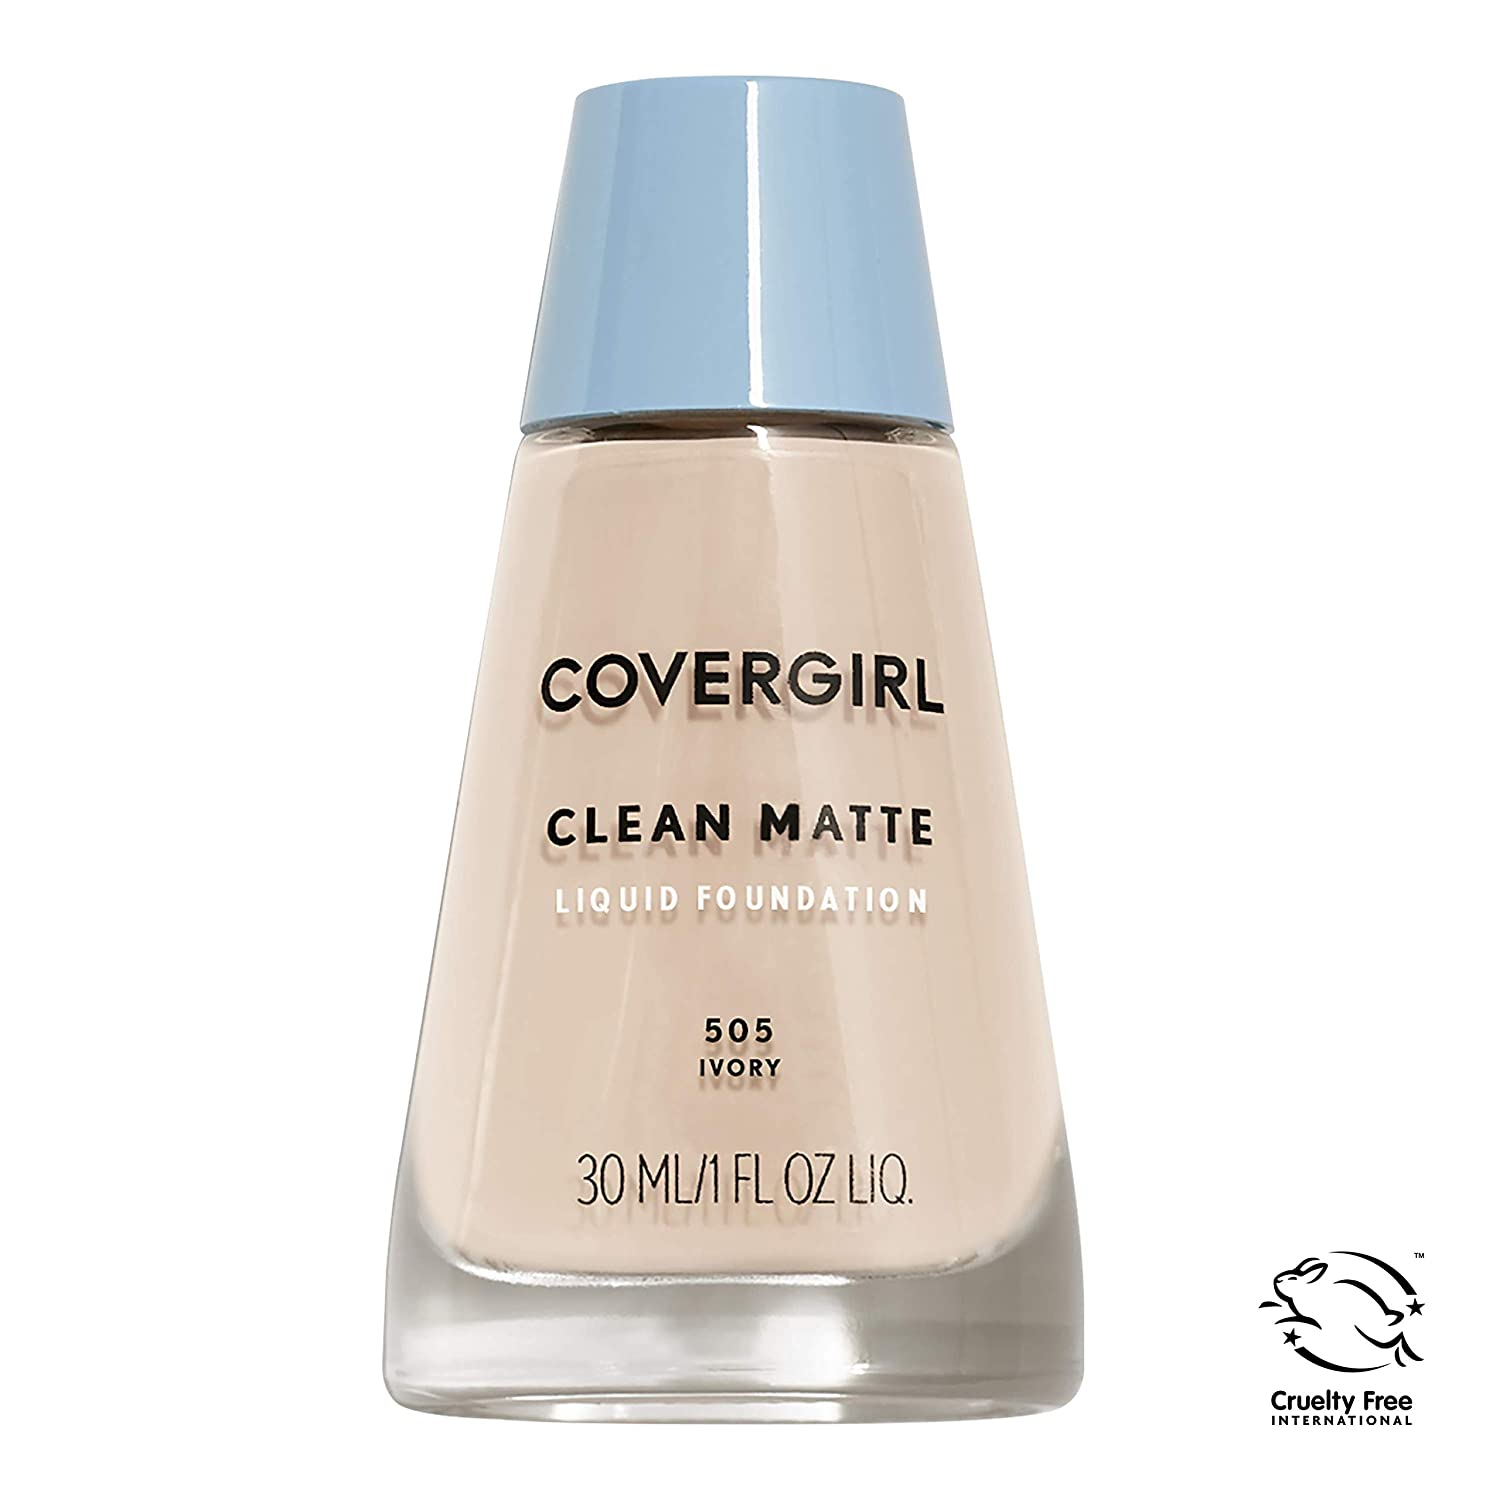 COVERGIRL, Clean Matte Liquid Foundation, Ivory 505, 1 oz, 1 Count (packaging may vary)